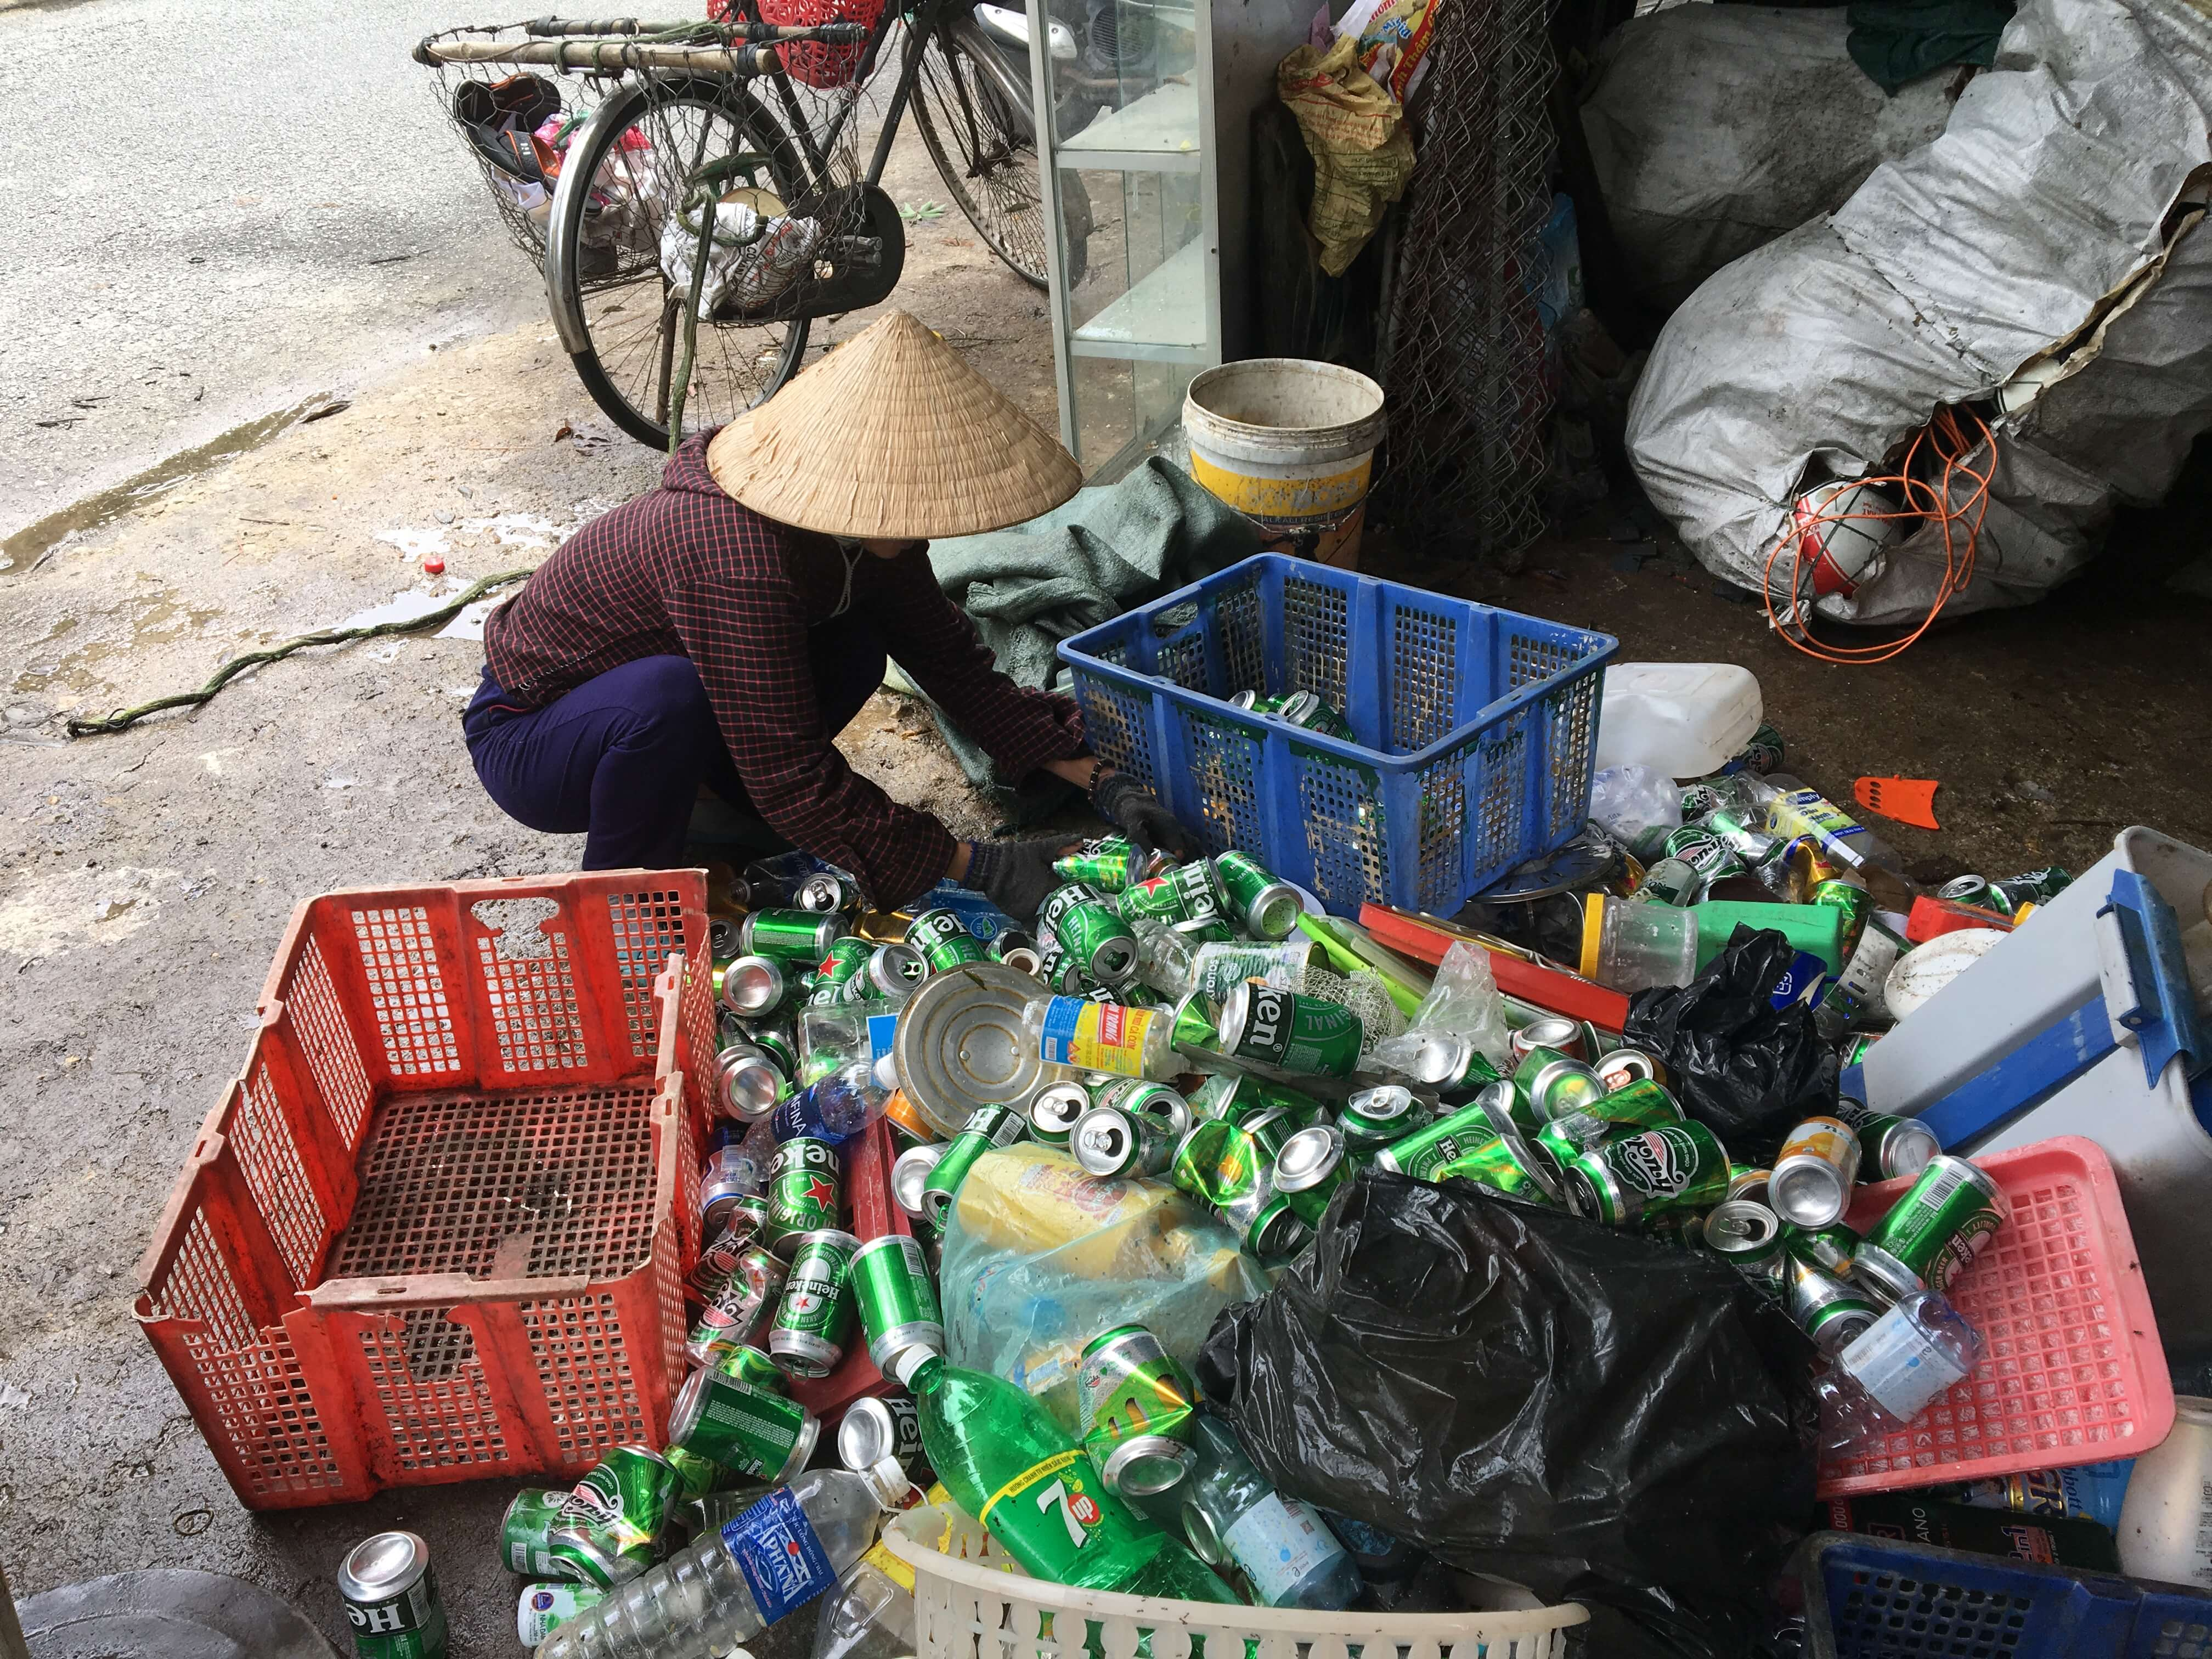 The research results about project The Value chain of recyclable in Hue City